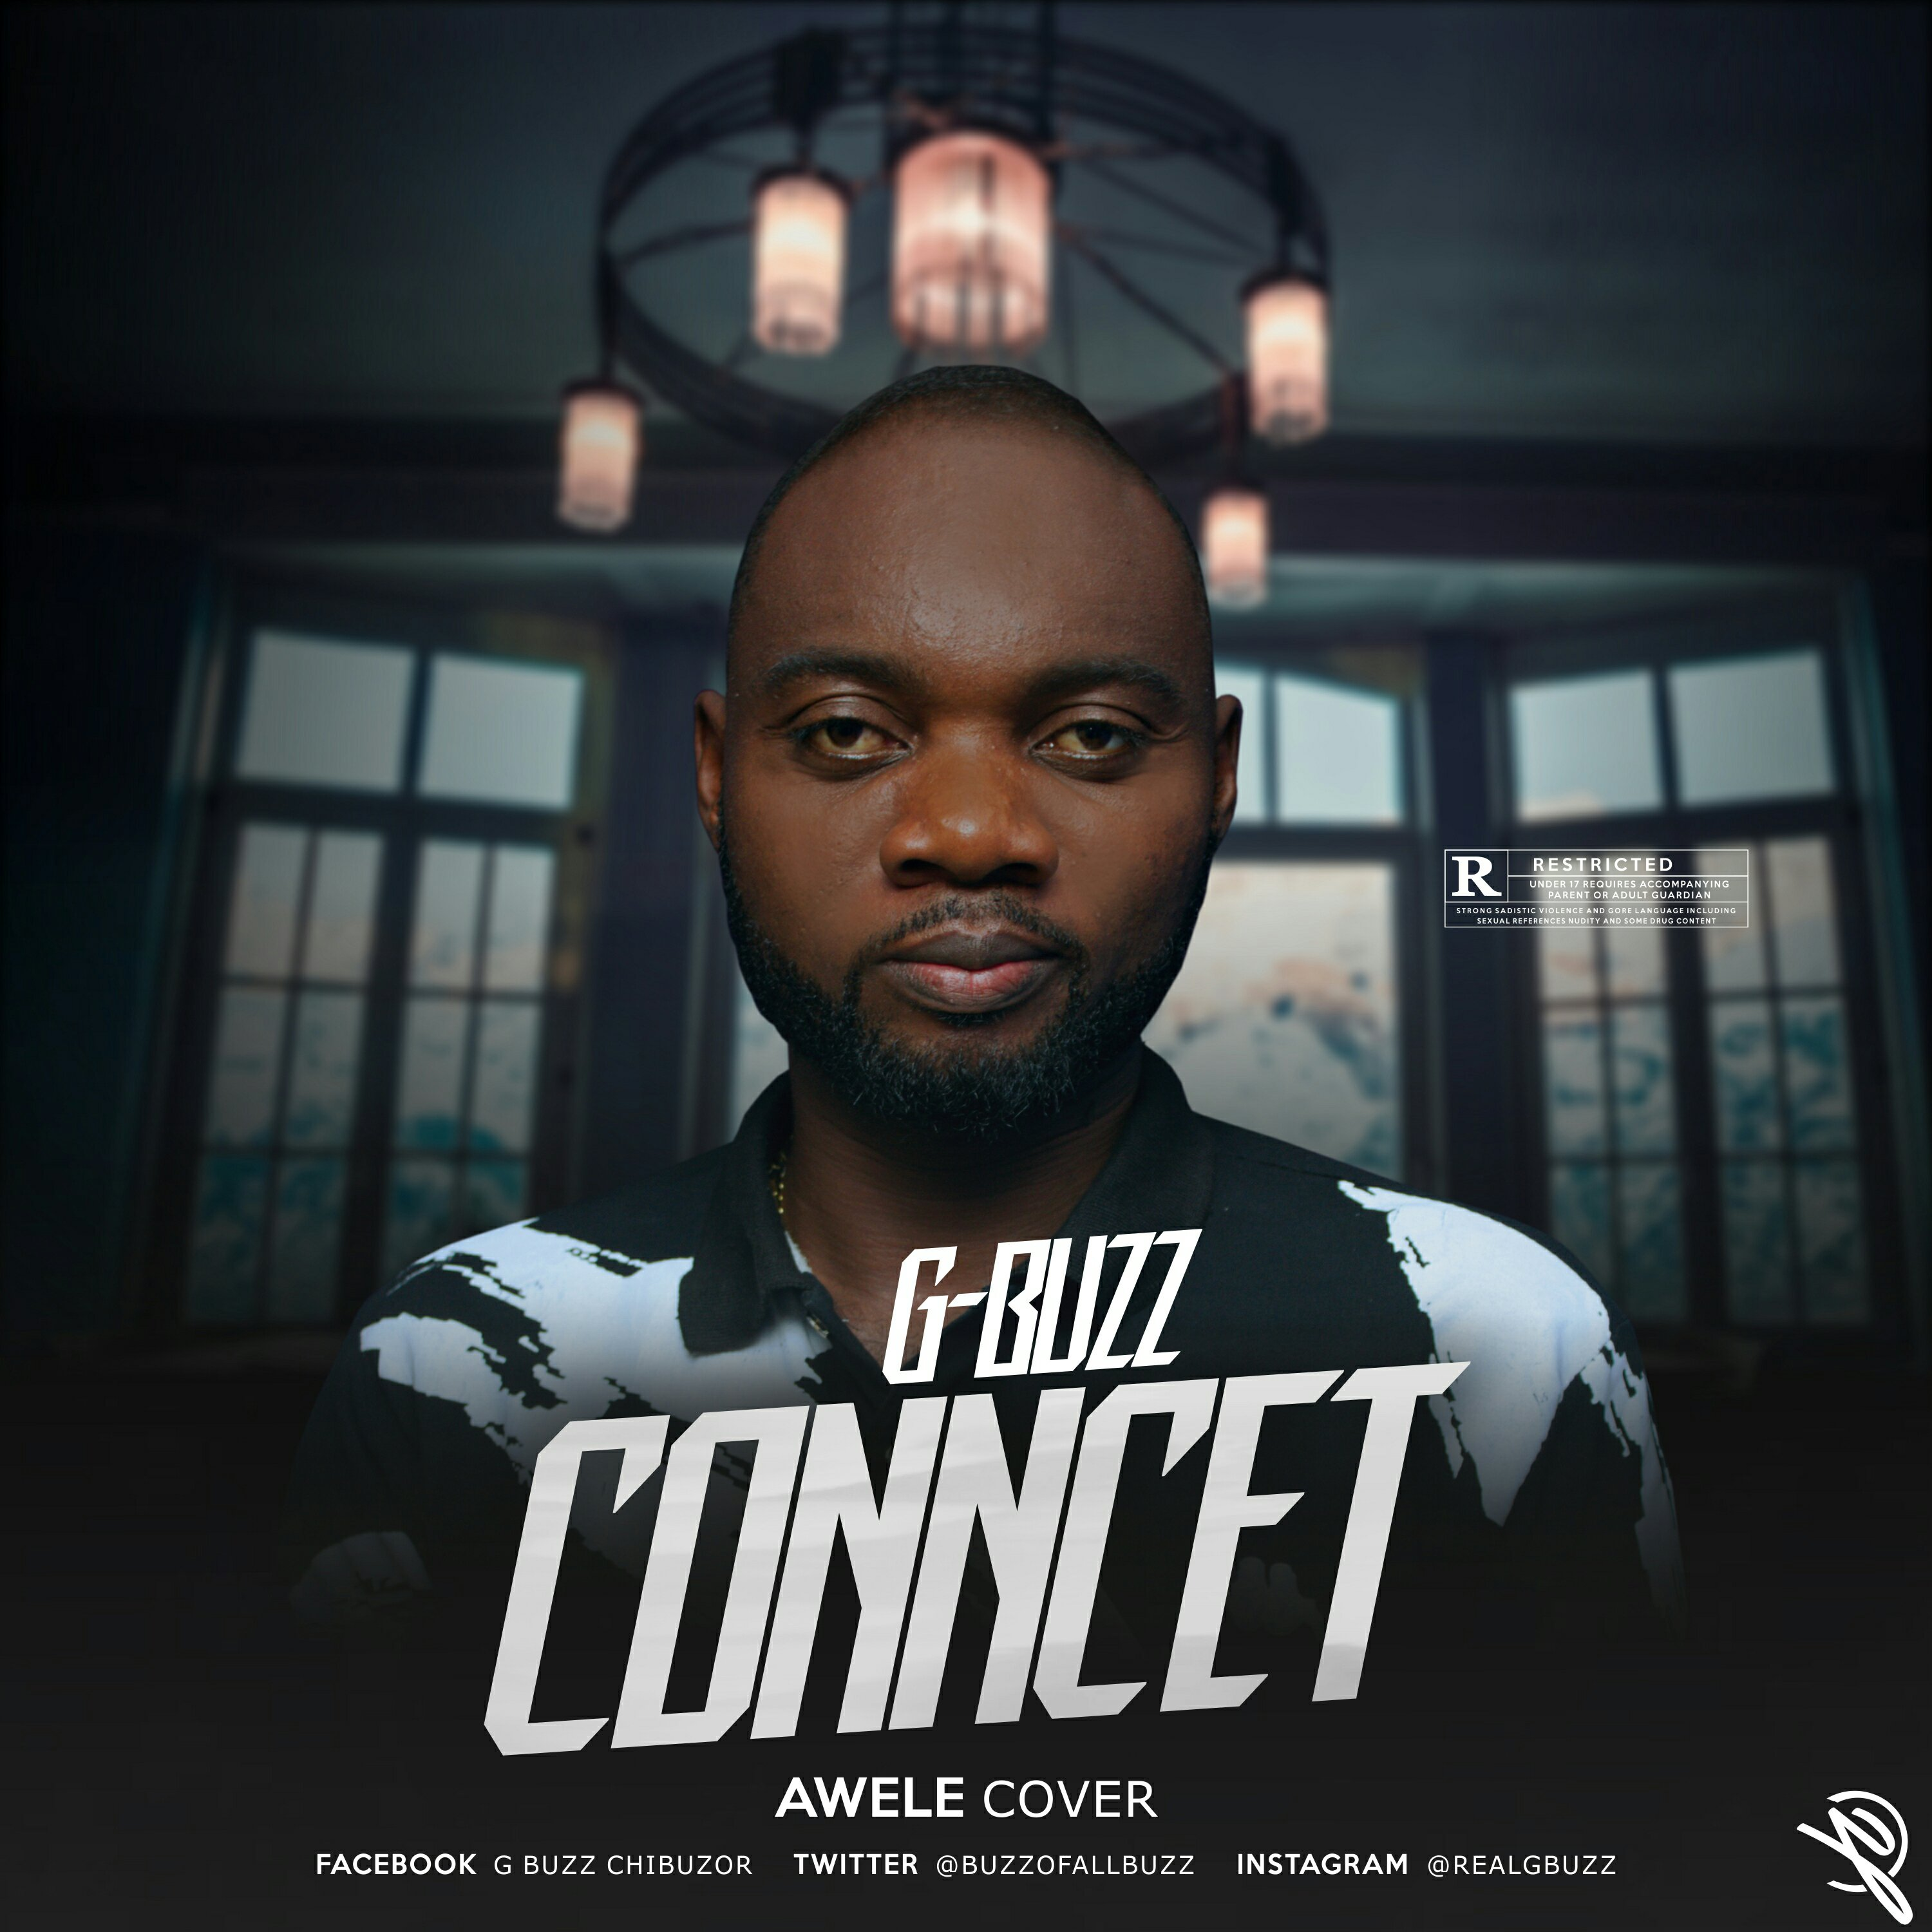 New Music | G-Buzz – Connect (Awele Cover) || @Buzzofallbuzz